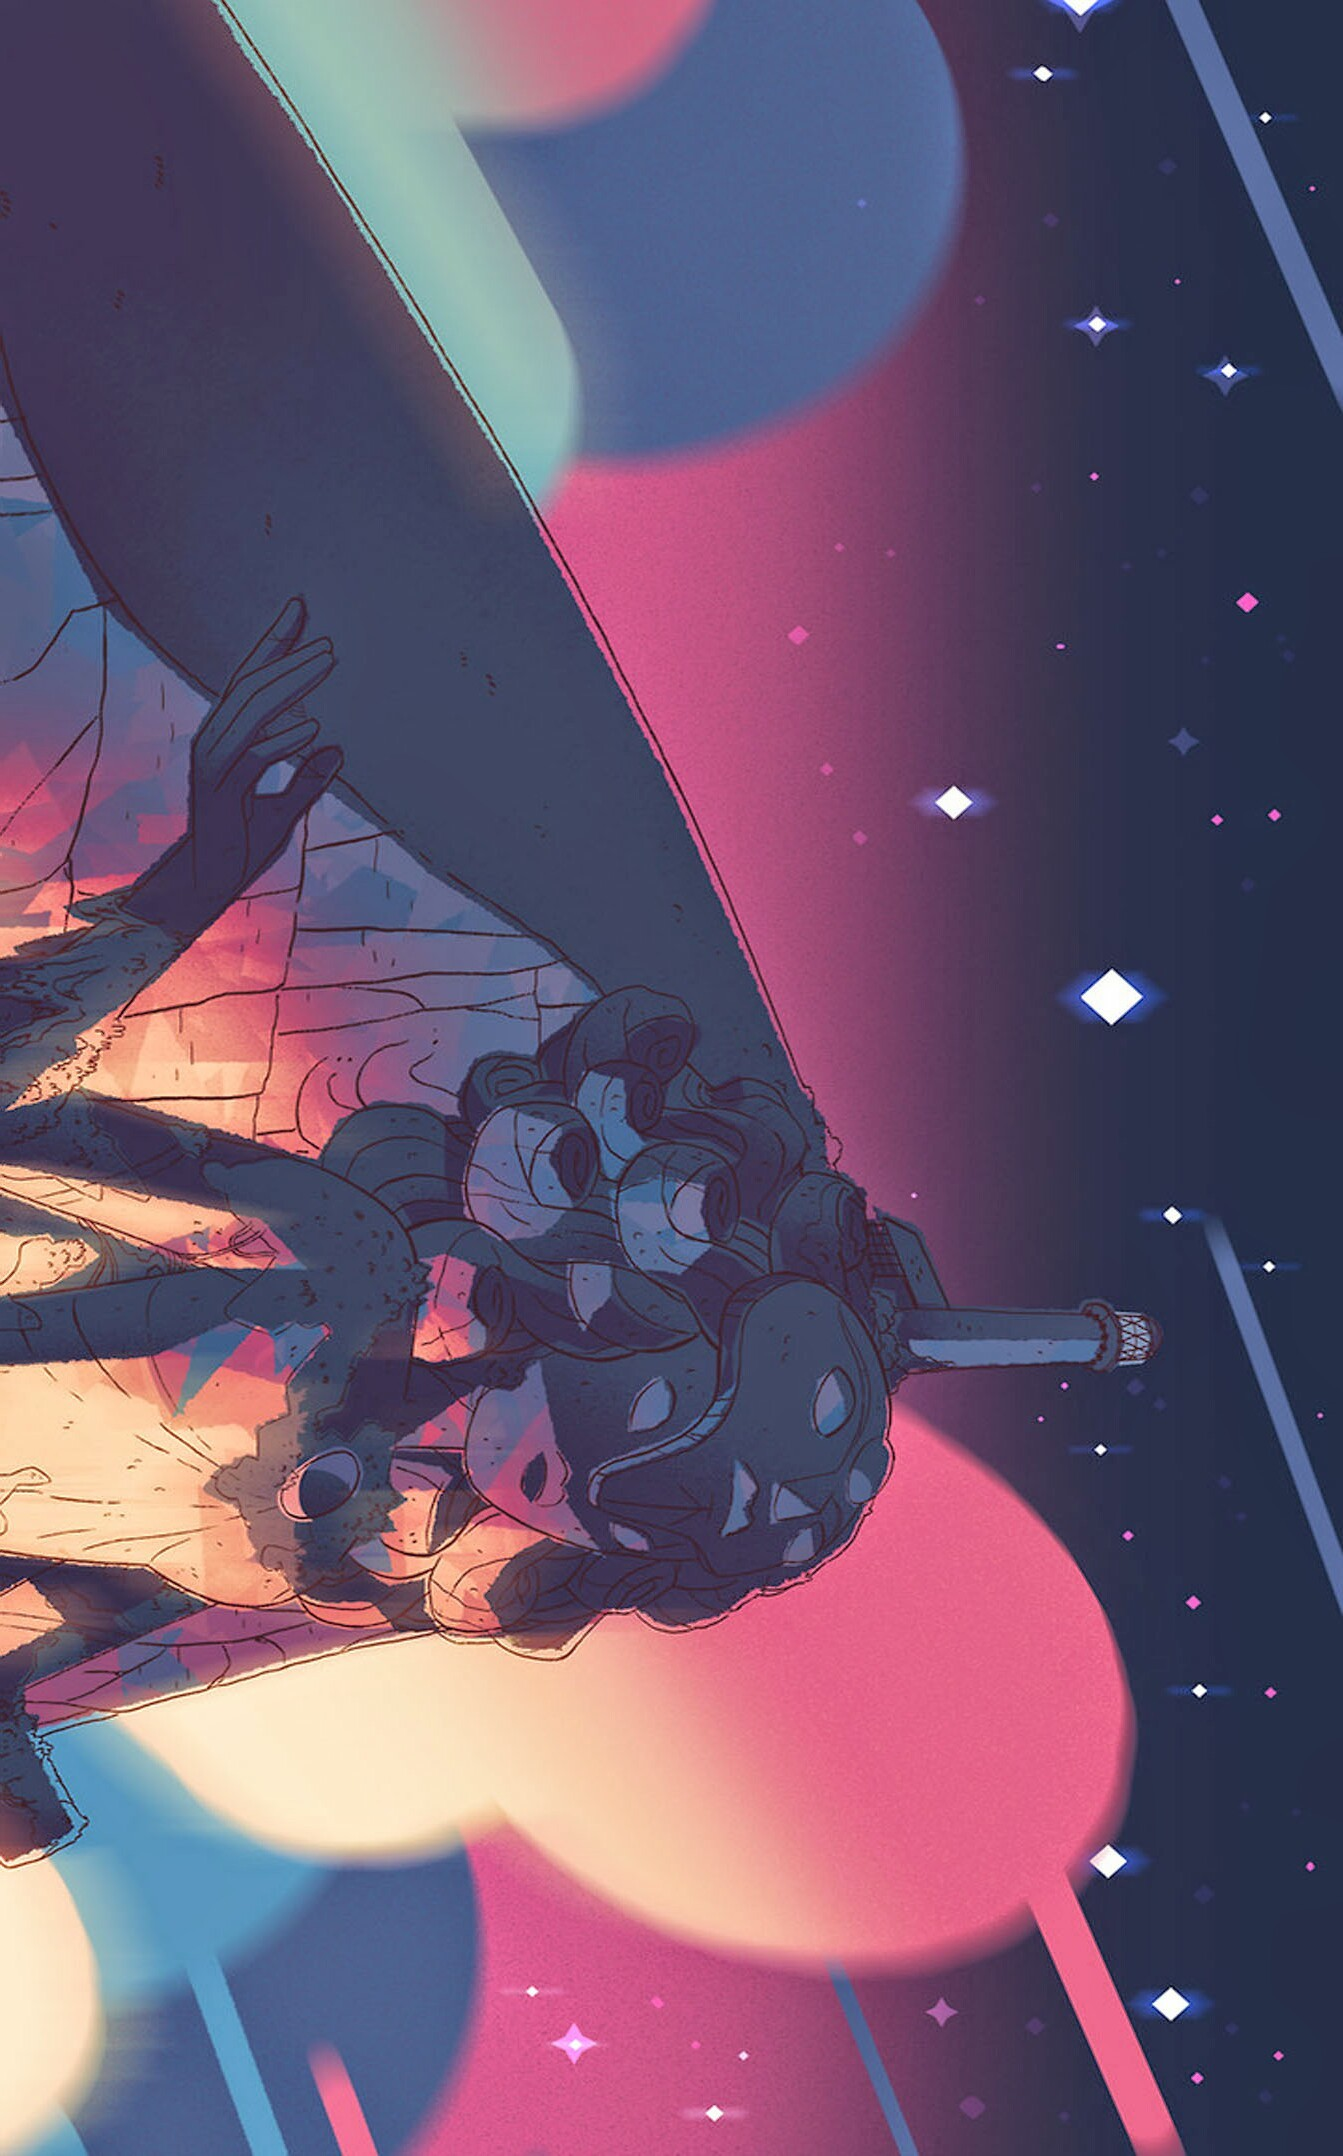 Cute Steven Universe Wallpaper 44 Steven Universe Wallpapers 183 ① Download Free Awesome